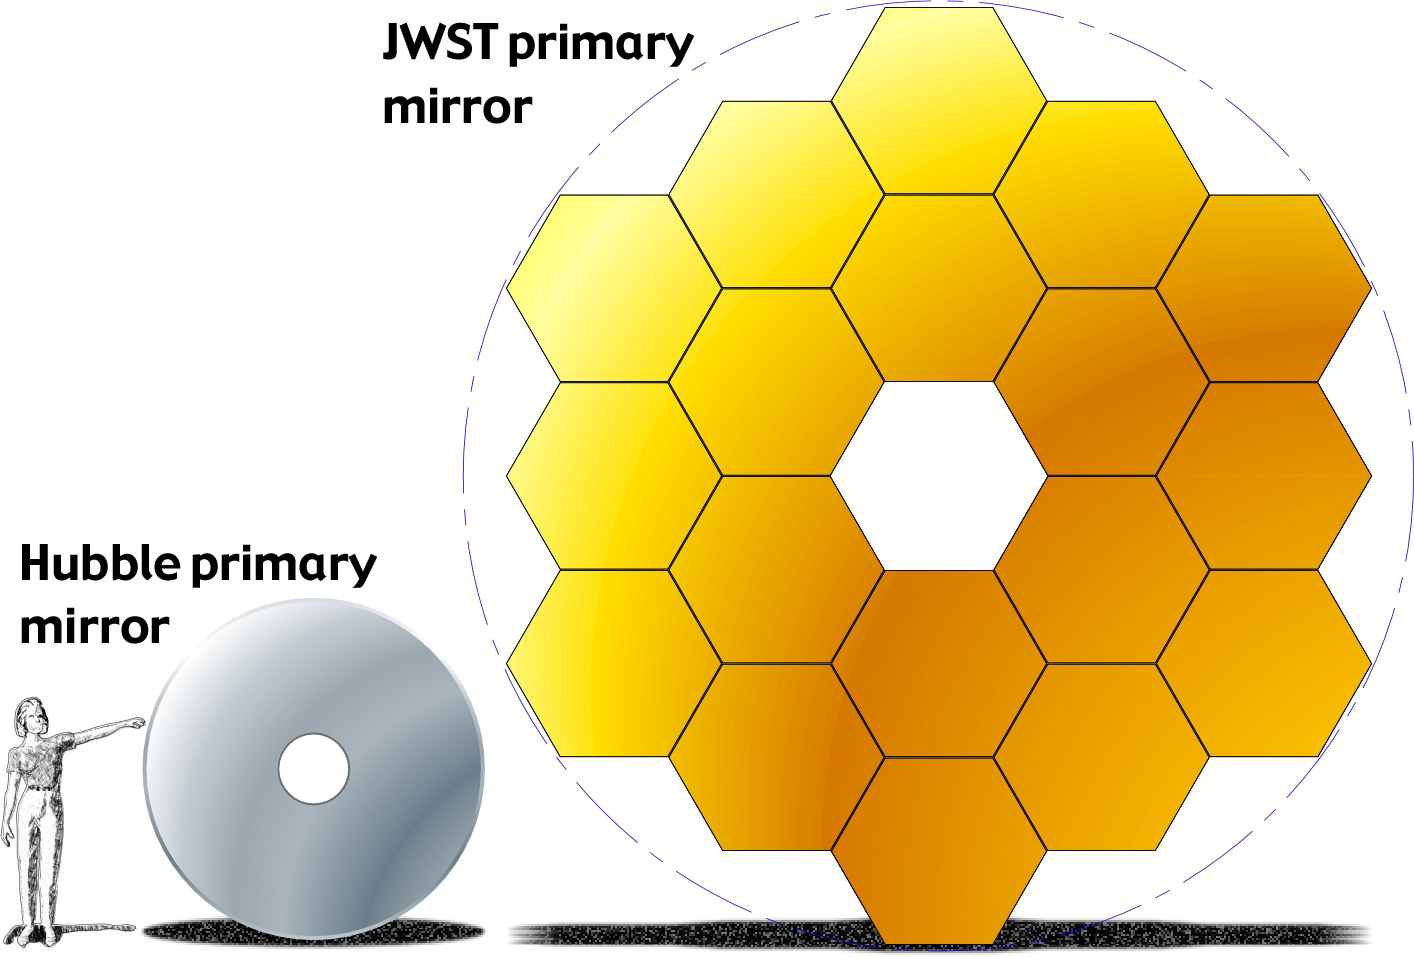 https://i1.wp.com/jwst.nasa.gov/images/JWST-HST-primary-mirrors.jpg